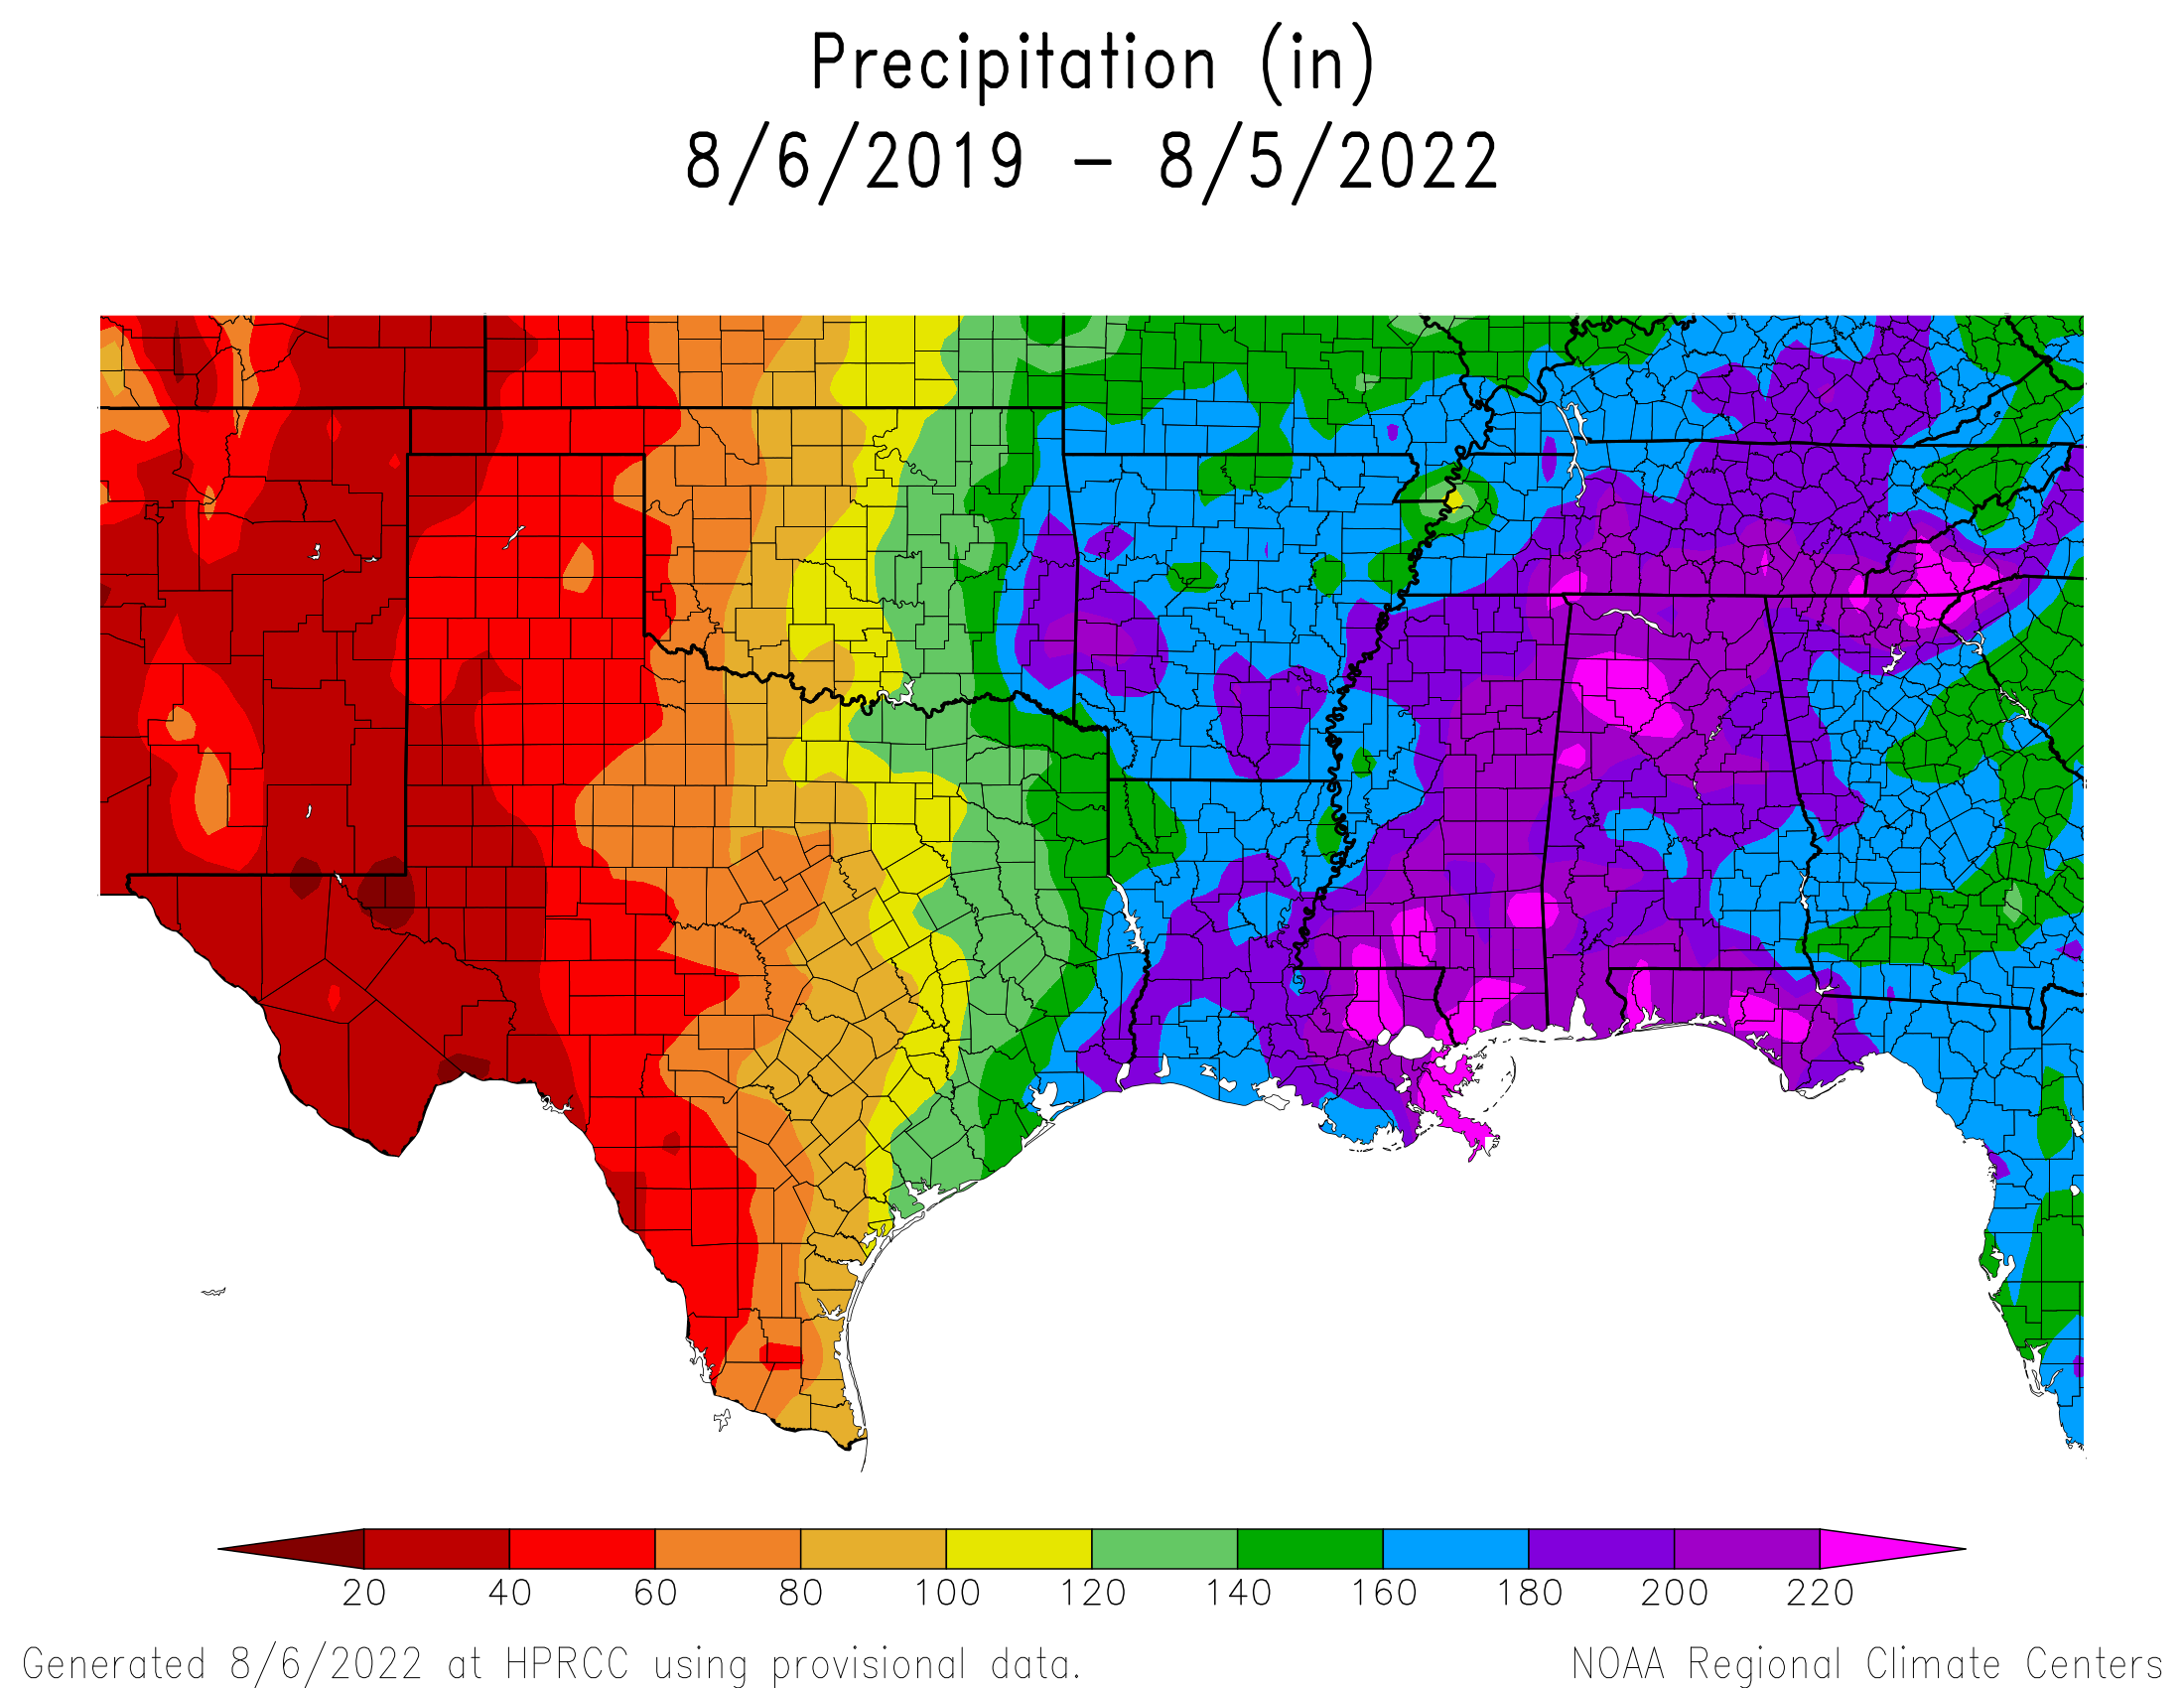 3-year Precipitation